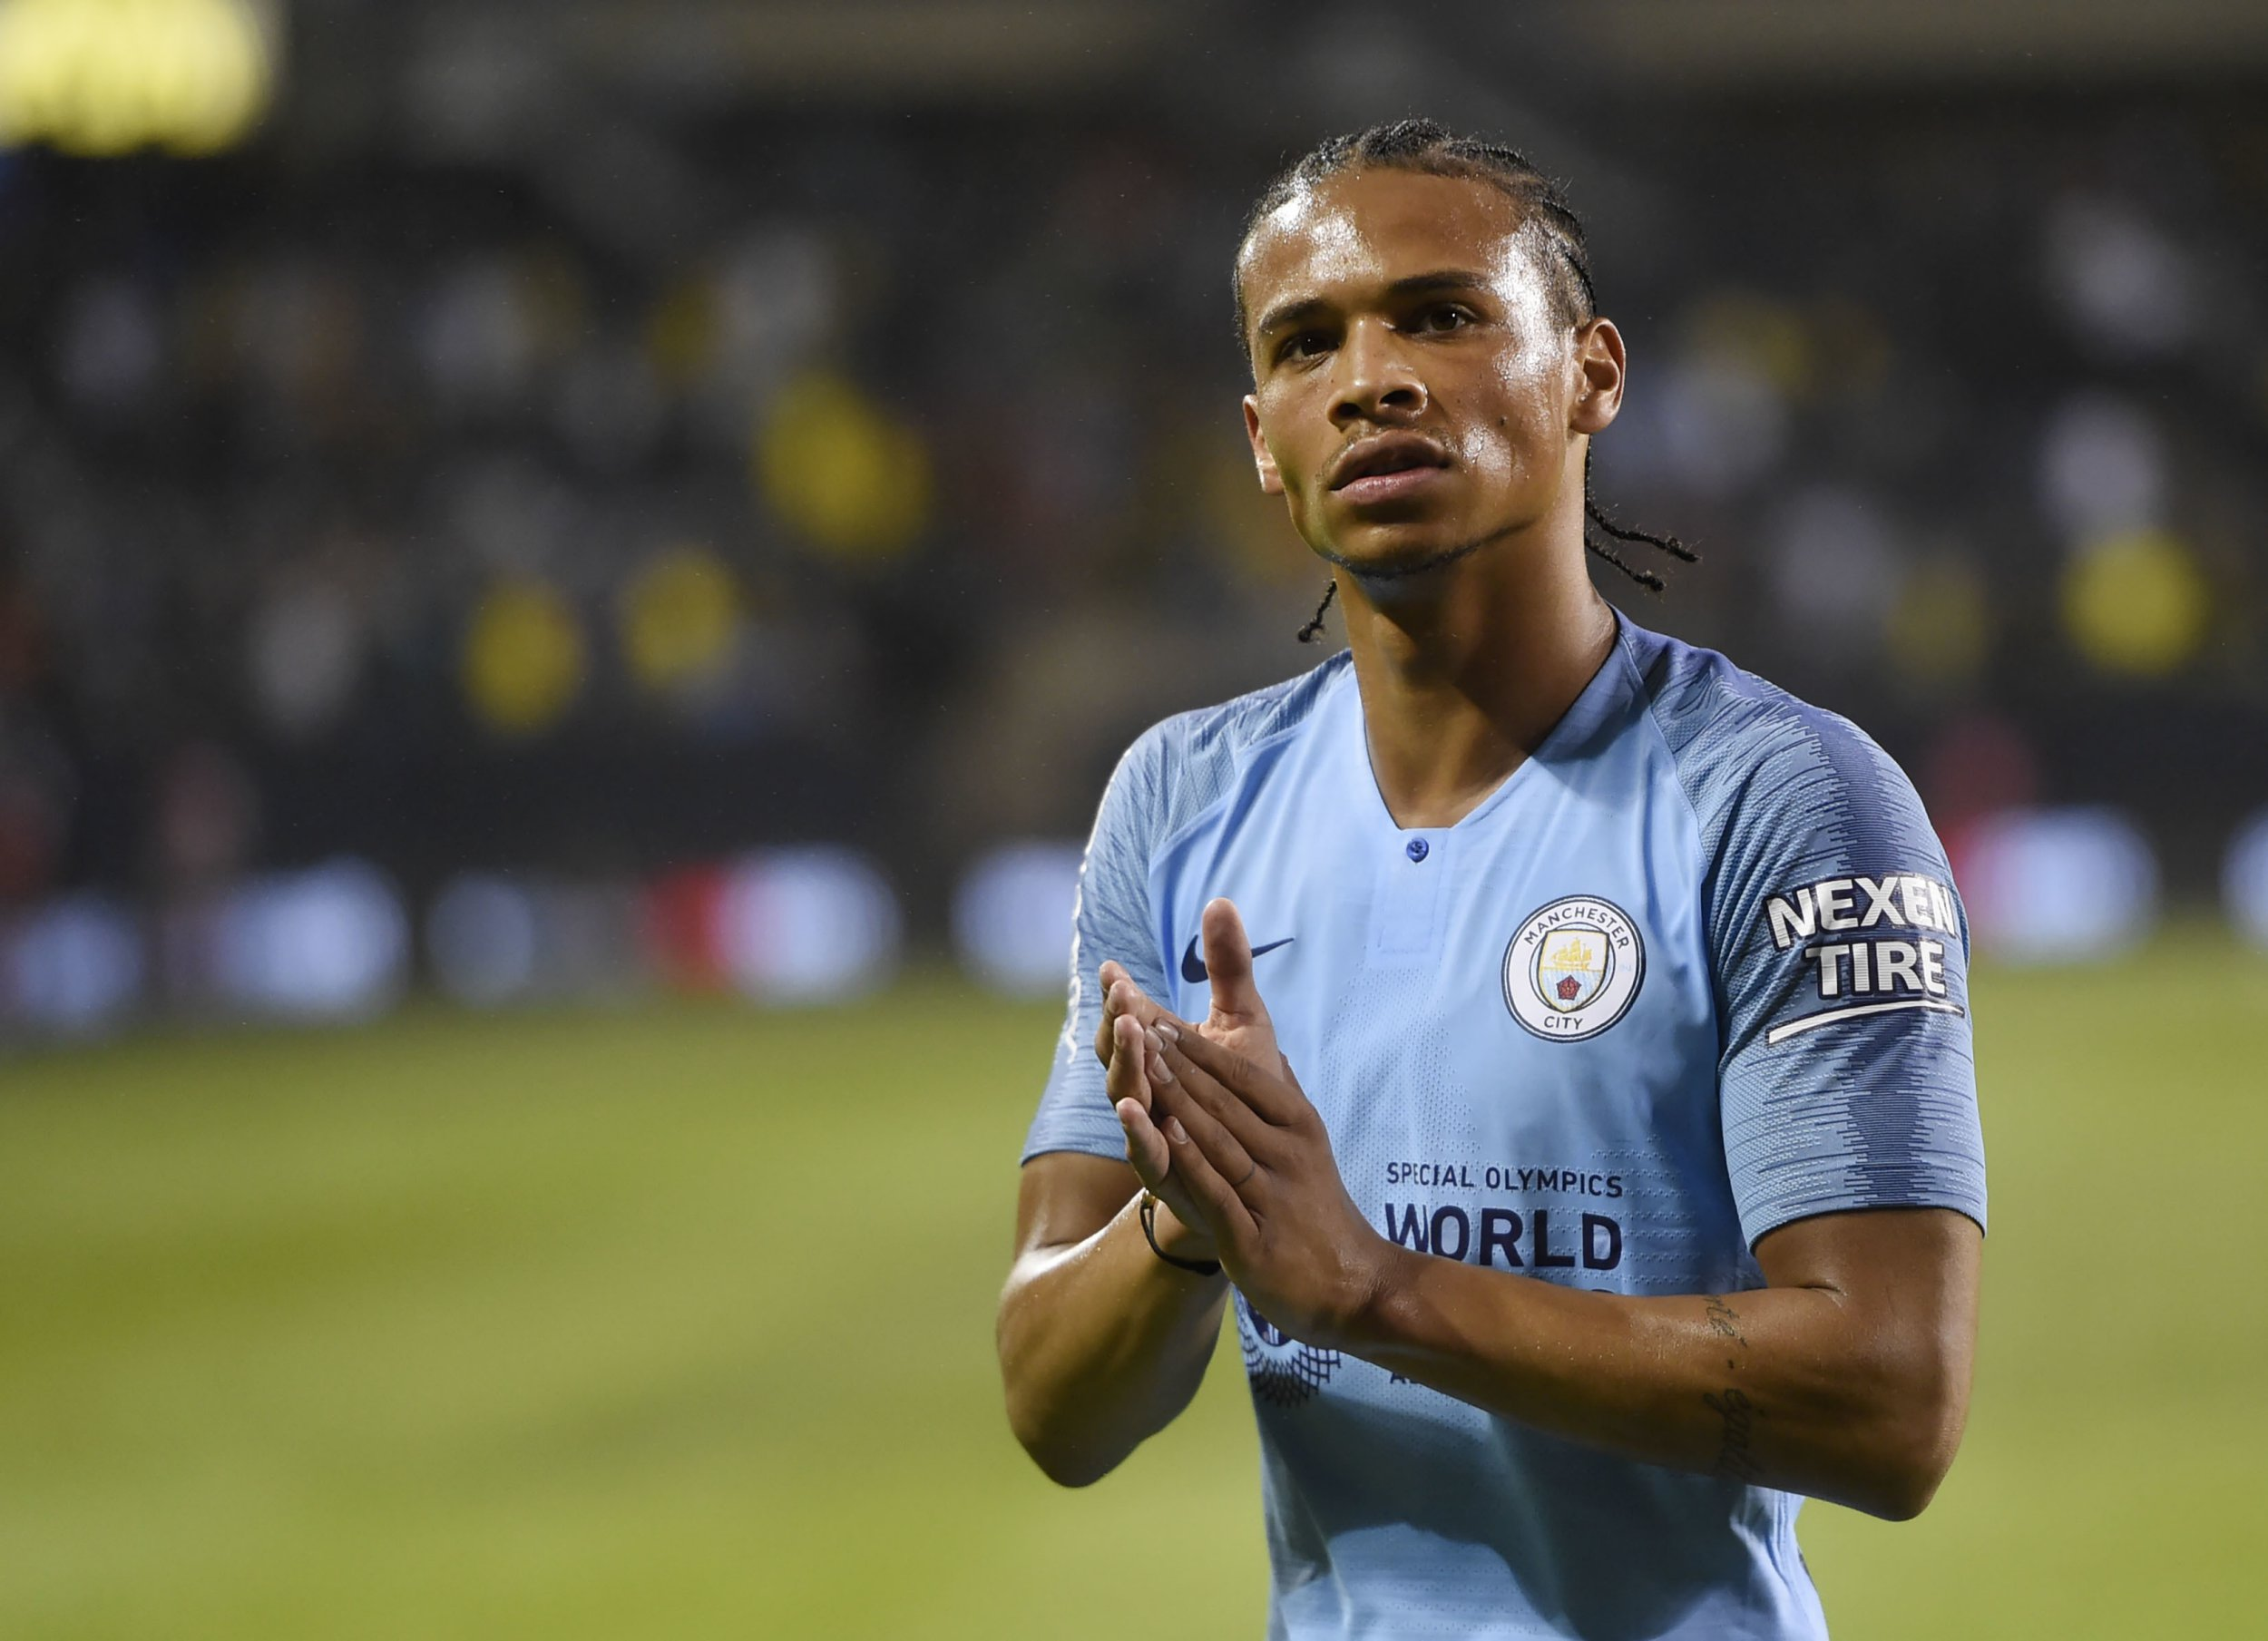 Leroy Sane believes Maurizio Sarri's Chelsea will be Manchester City's biggest threat